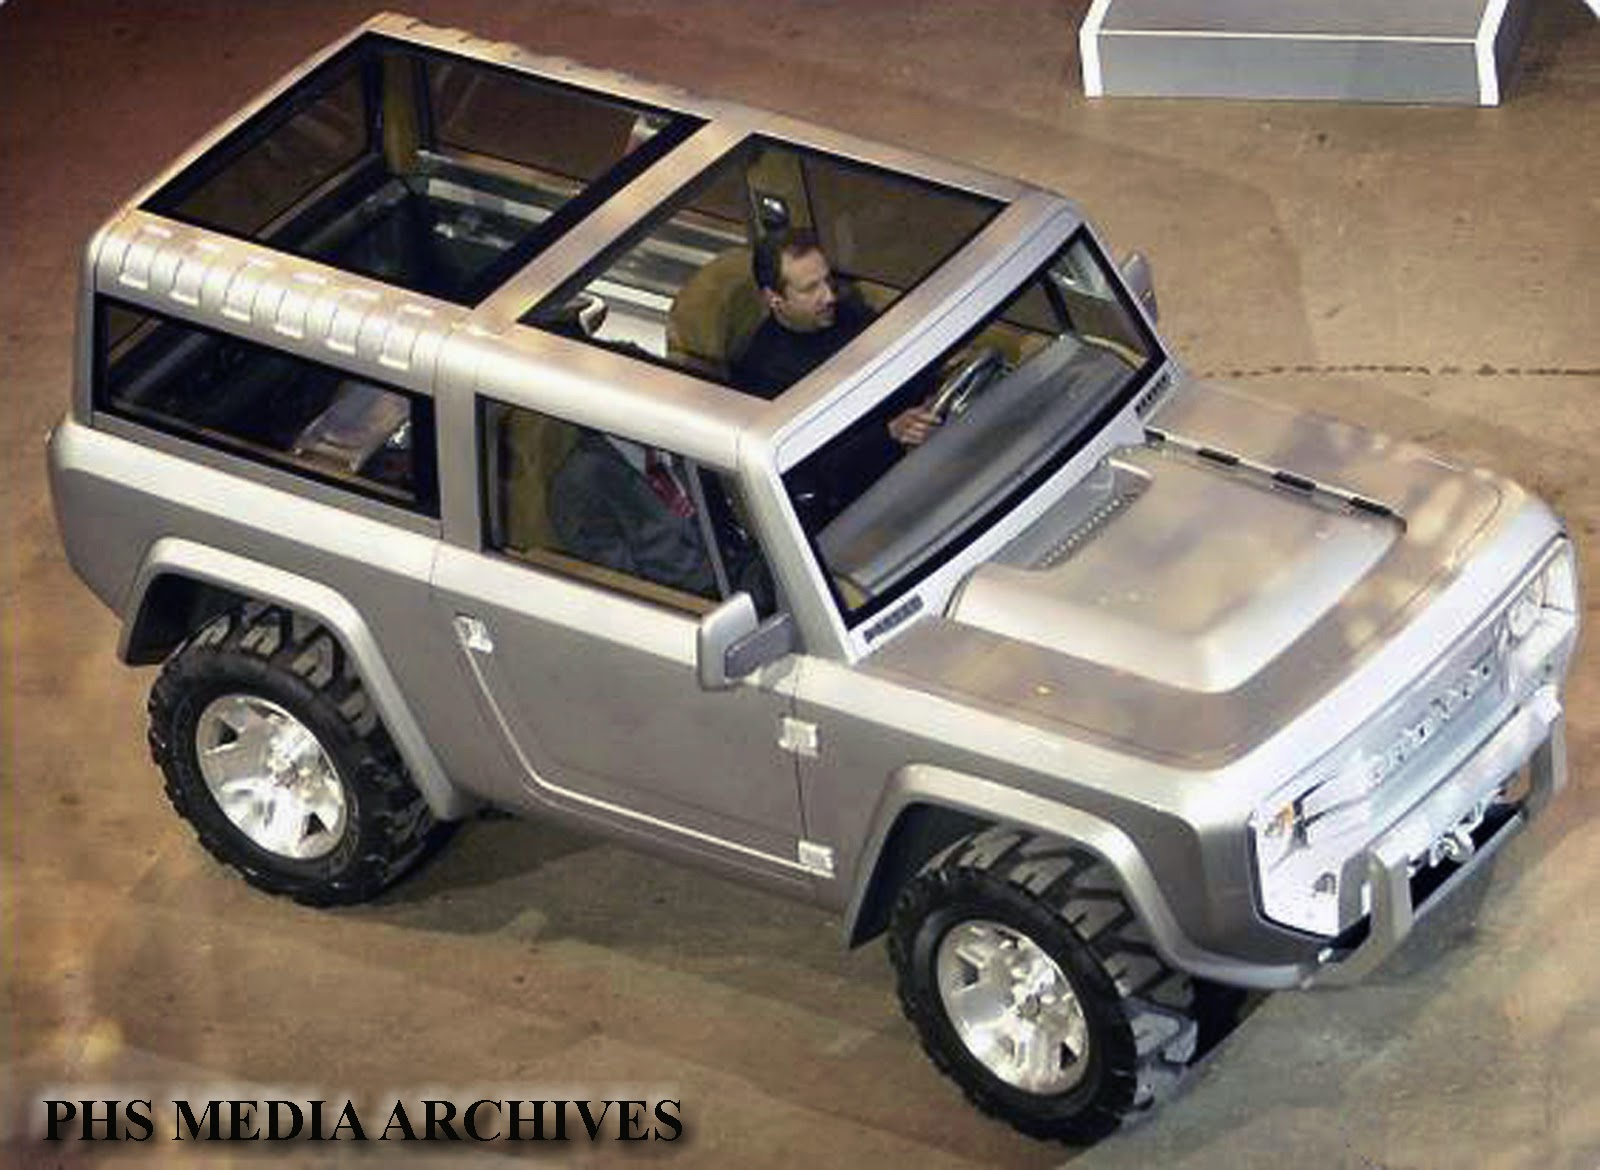 The rear part of roof was removable on the 2004 bronco concept to make a baja truck using